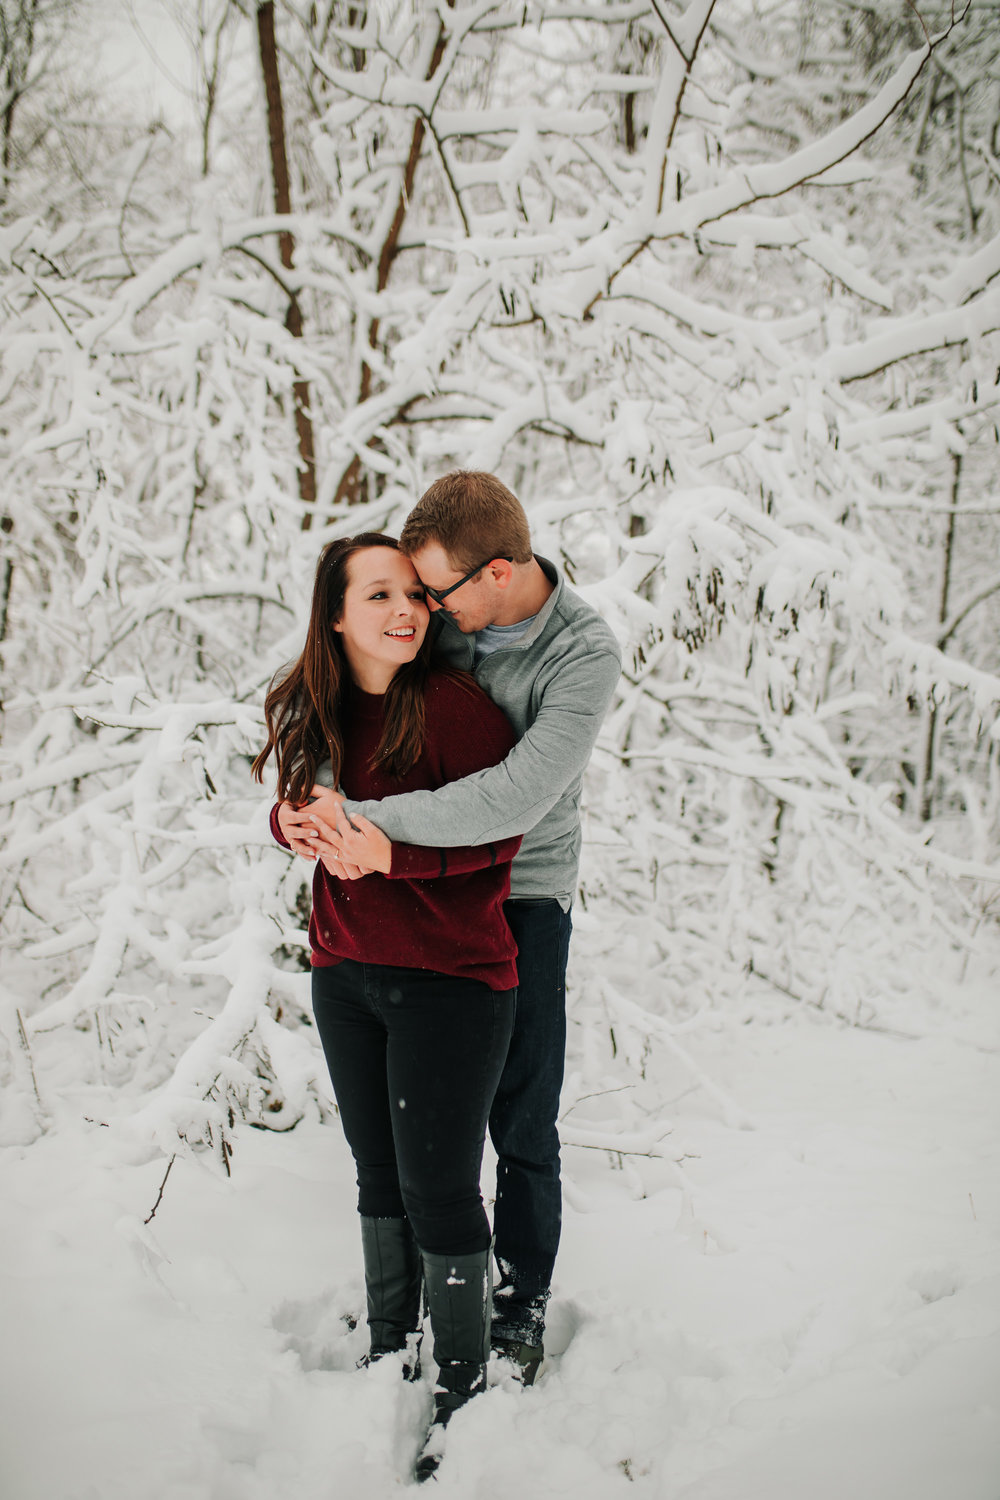 Vanessa & Dan - Engaged - Nathaniel Jensen Photography - Omaha Nebraska Wedding Photographer - Standing Bear Lake - Snowy Engagement Session-69.jpg